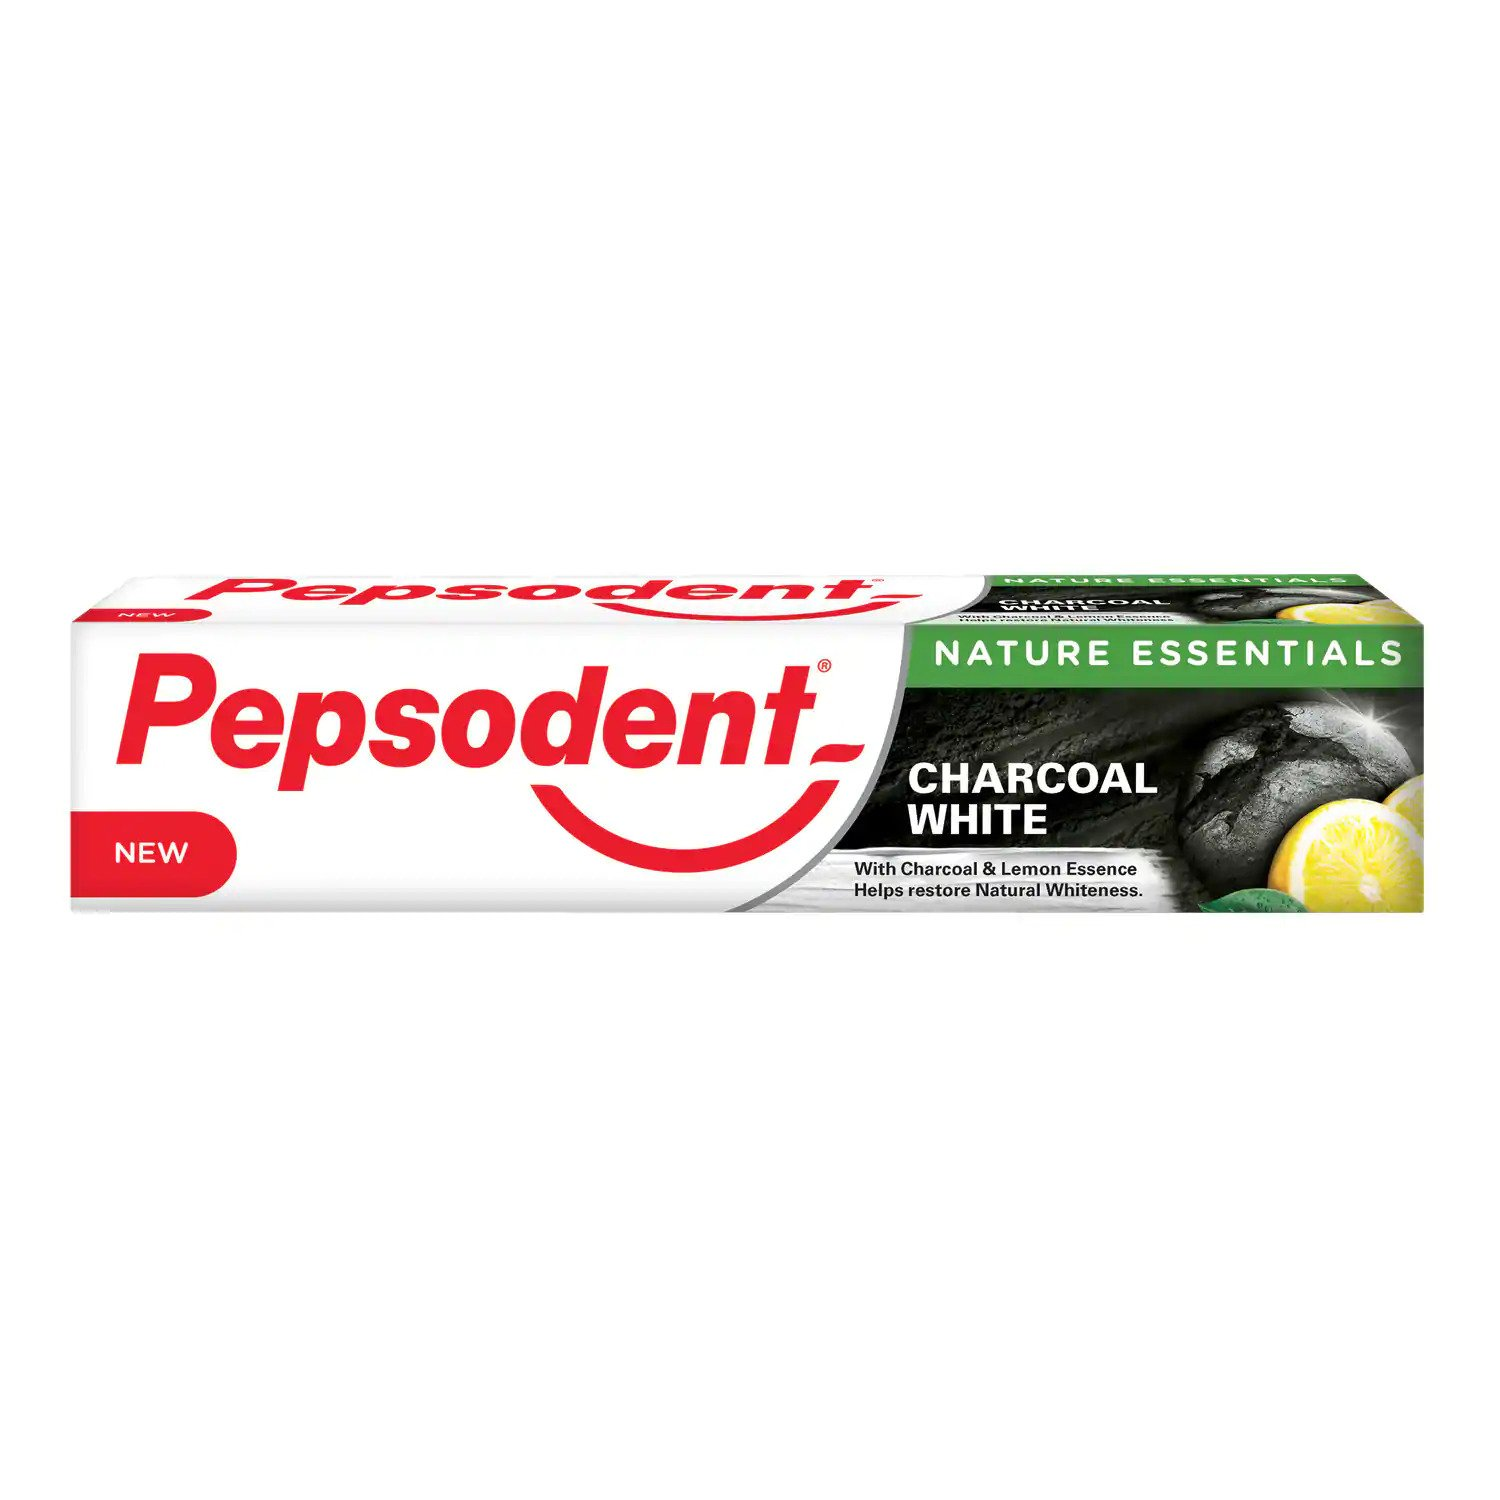 Pepsodent Charcoal White Toothpaste